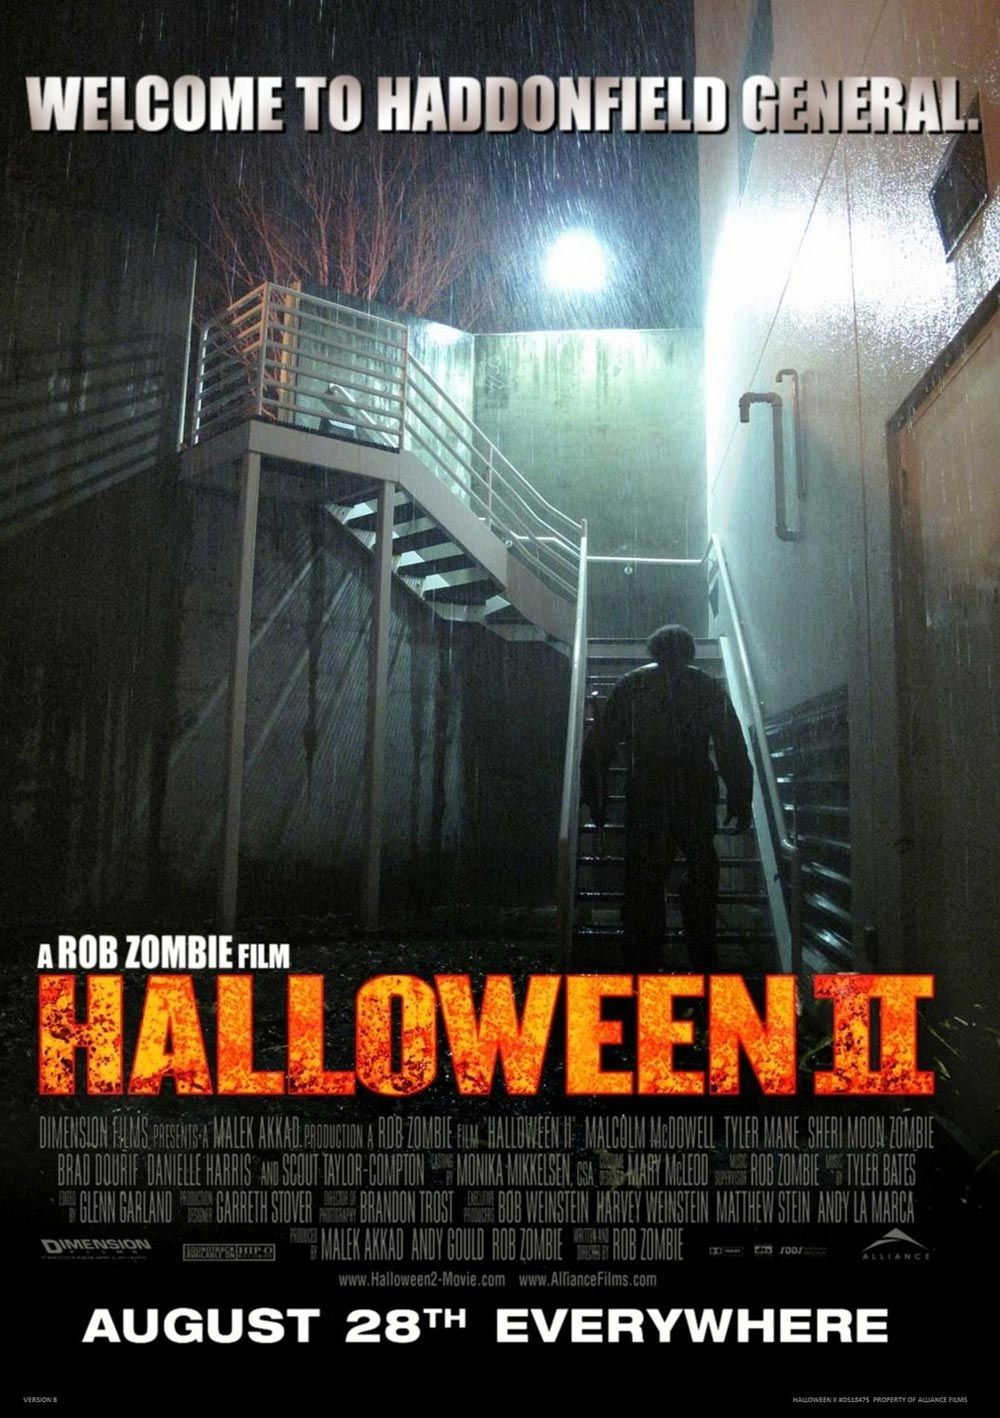 Rob Zombies Halloween.....great movie but, didn't care for the ...